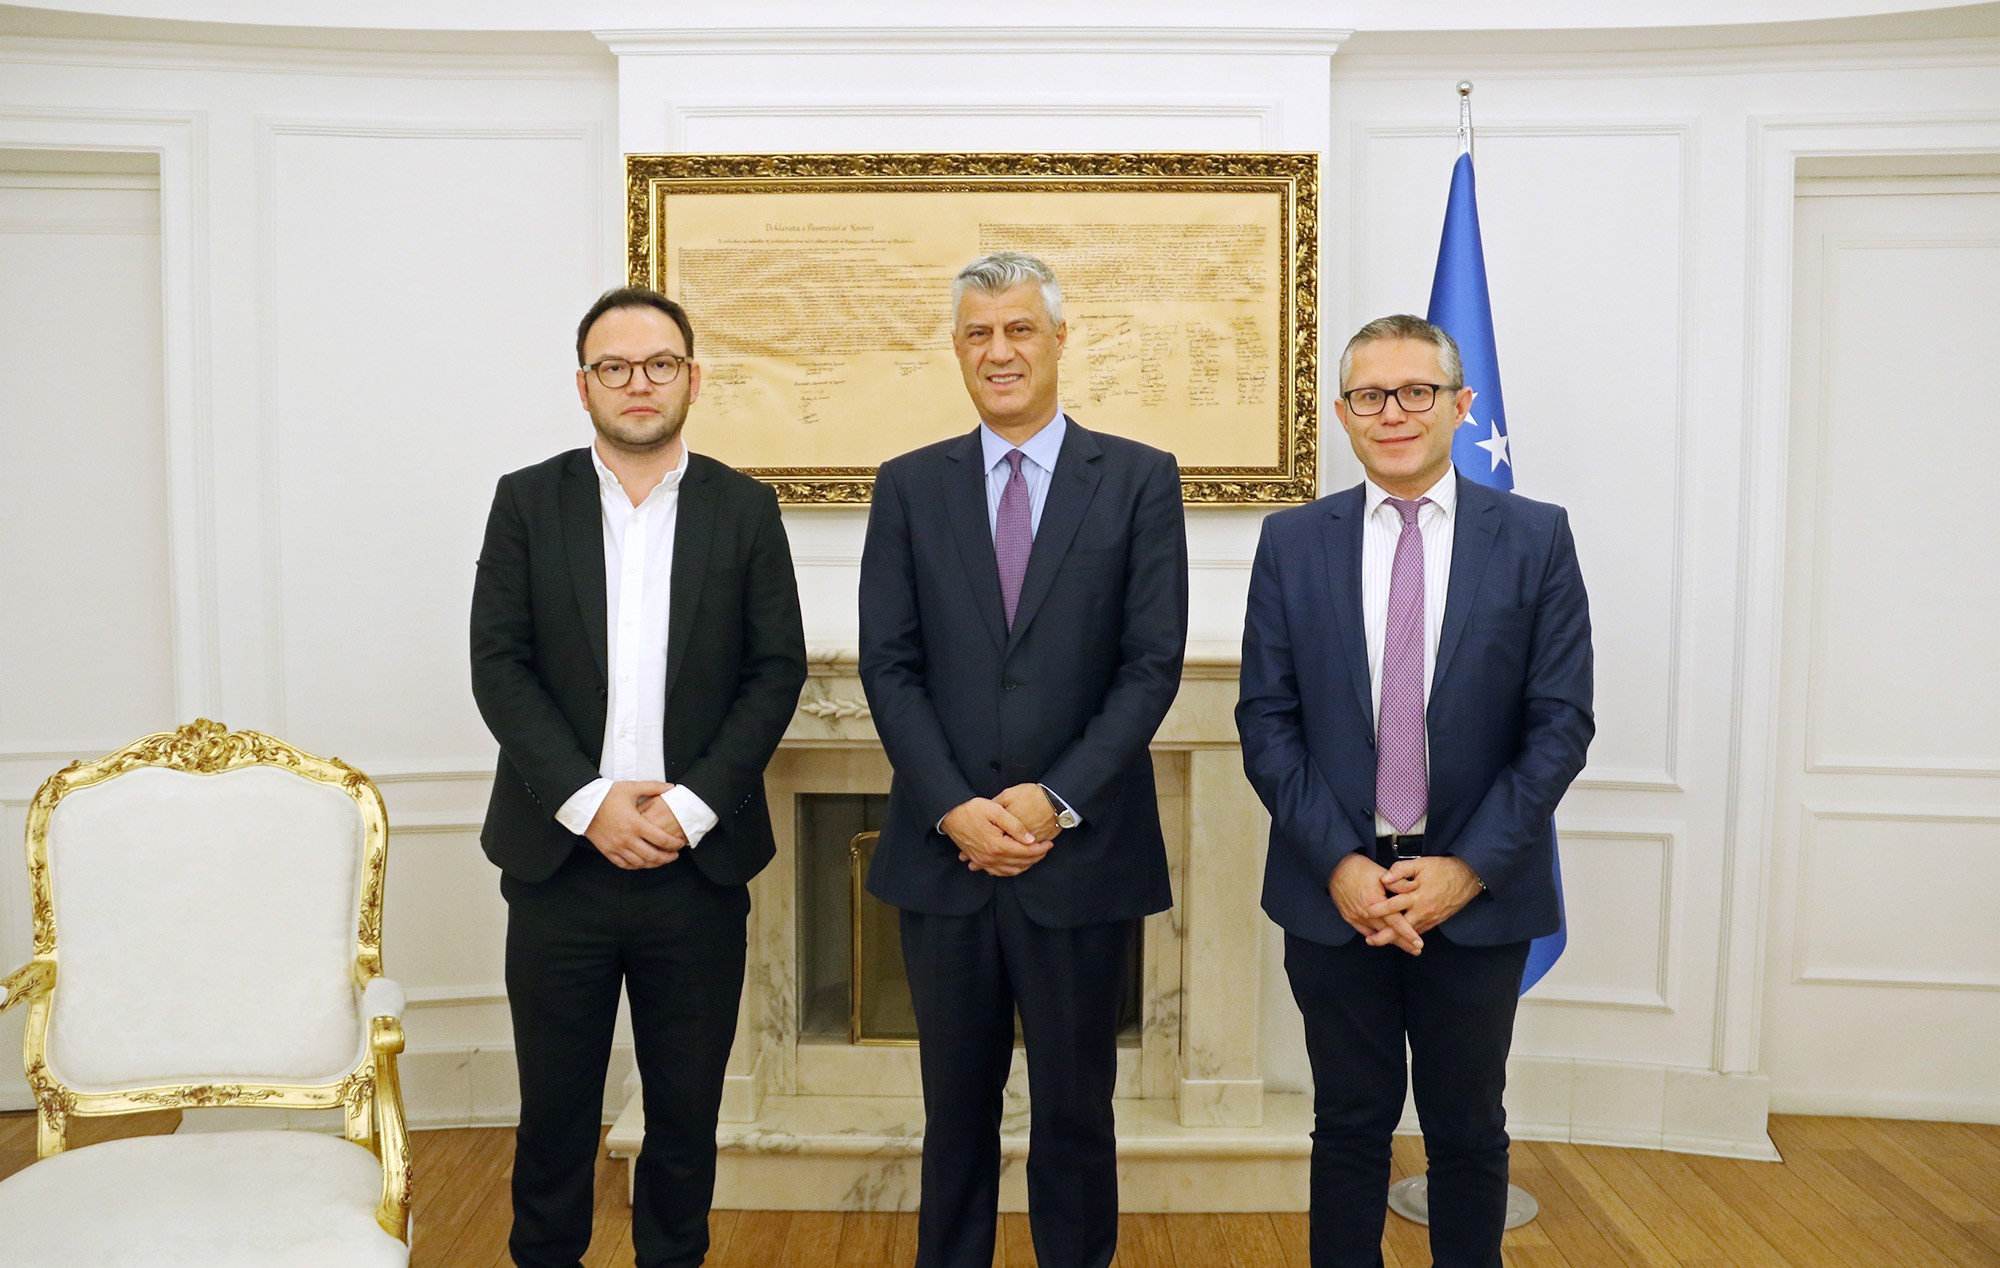 President Thaçi and Prime Minister Haradinaj appoint KIA Director and Inspector General